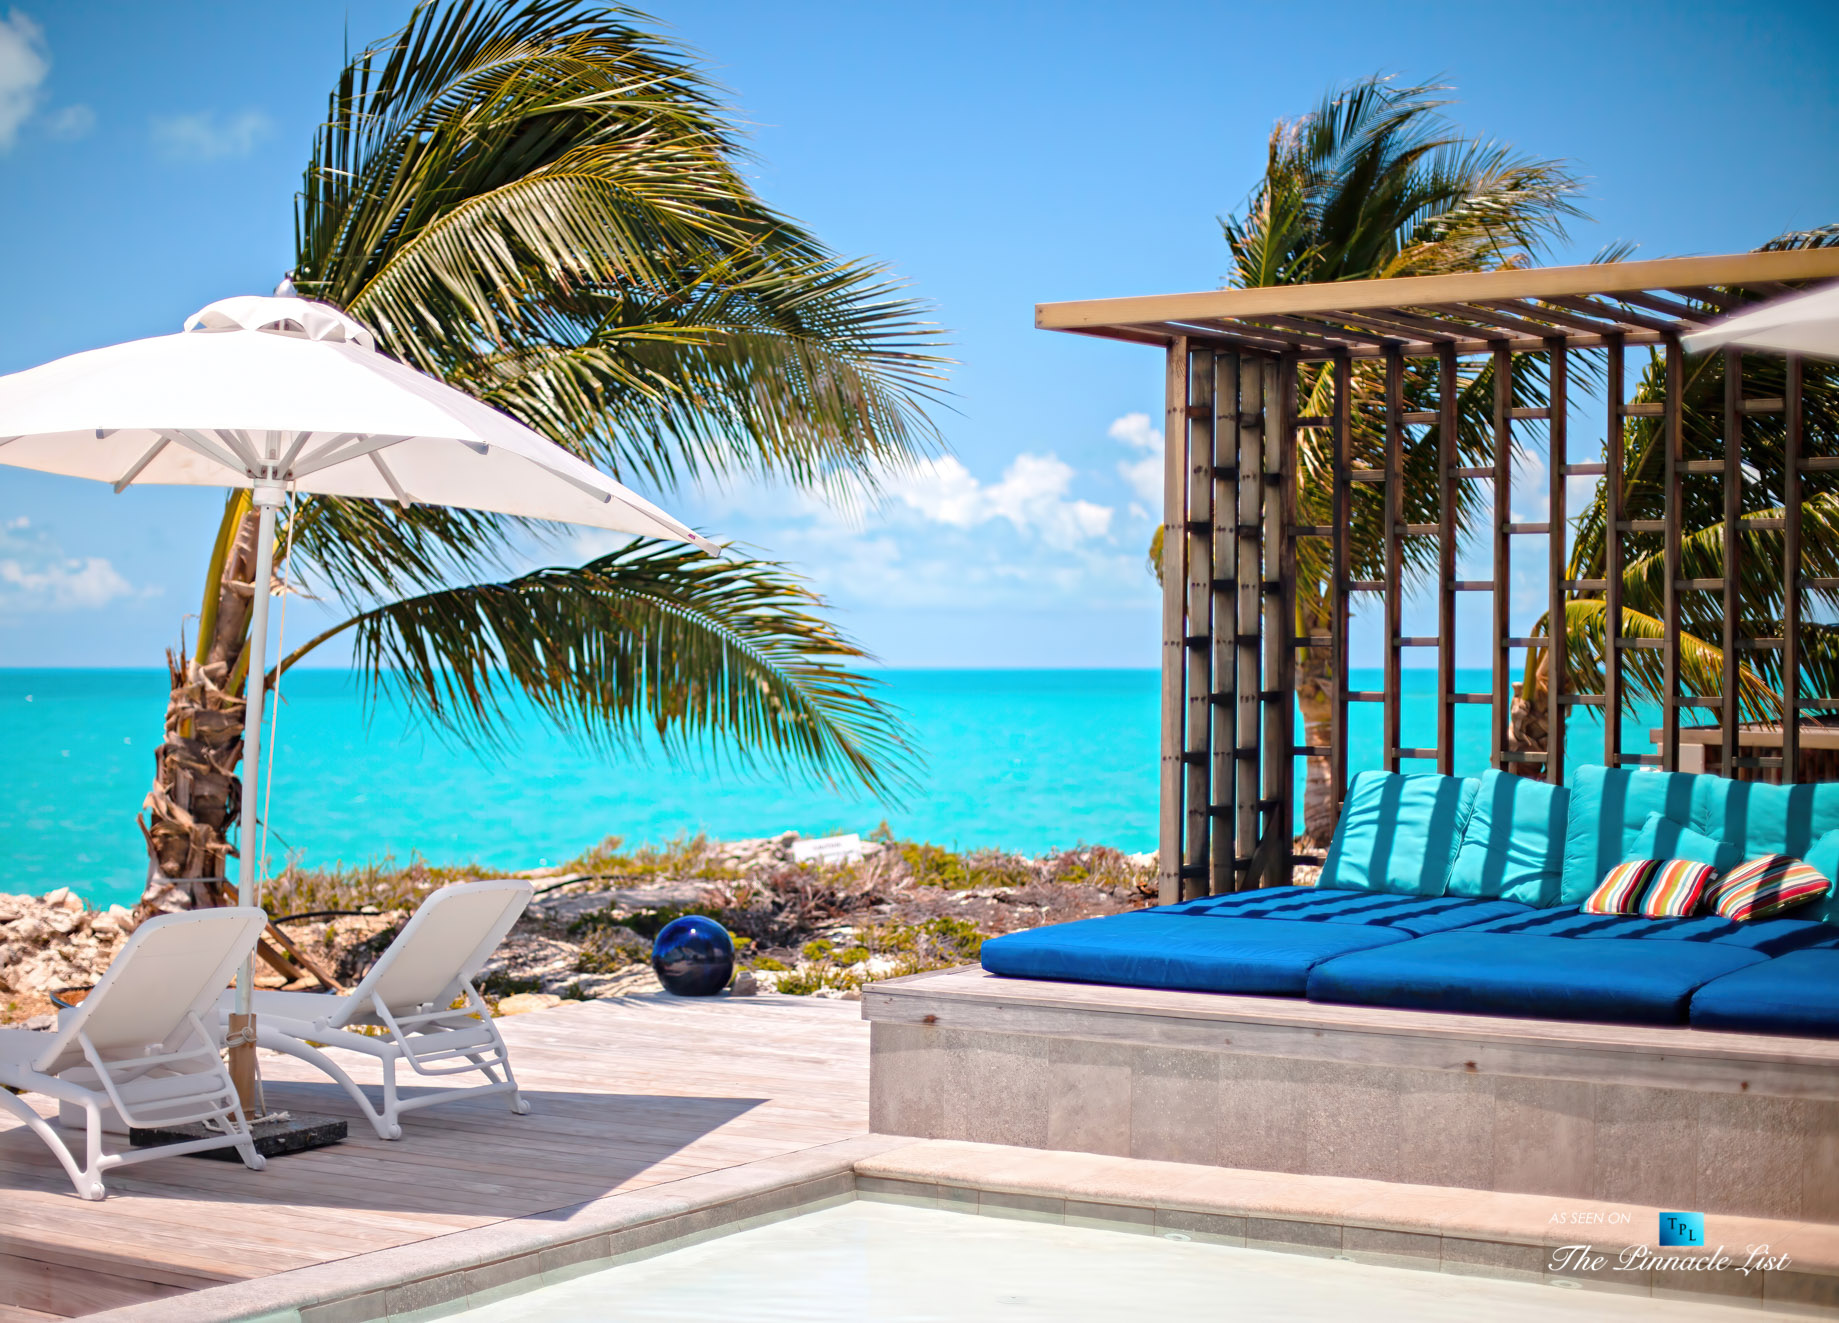 Tip of the Tail Luxury Villa – Providenciales, Turks and Caicos Islands – Pool Deck Ocean View